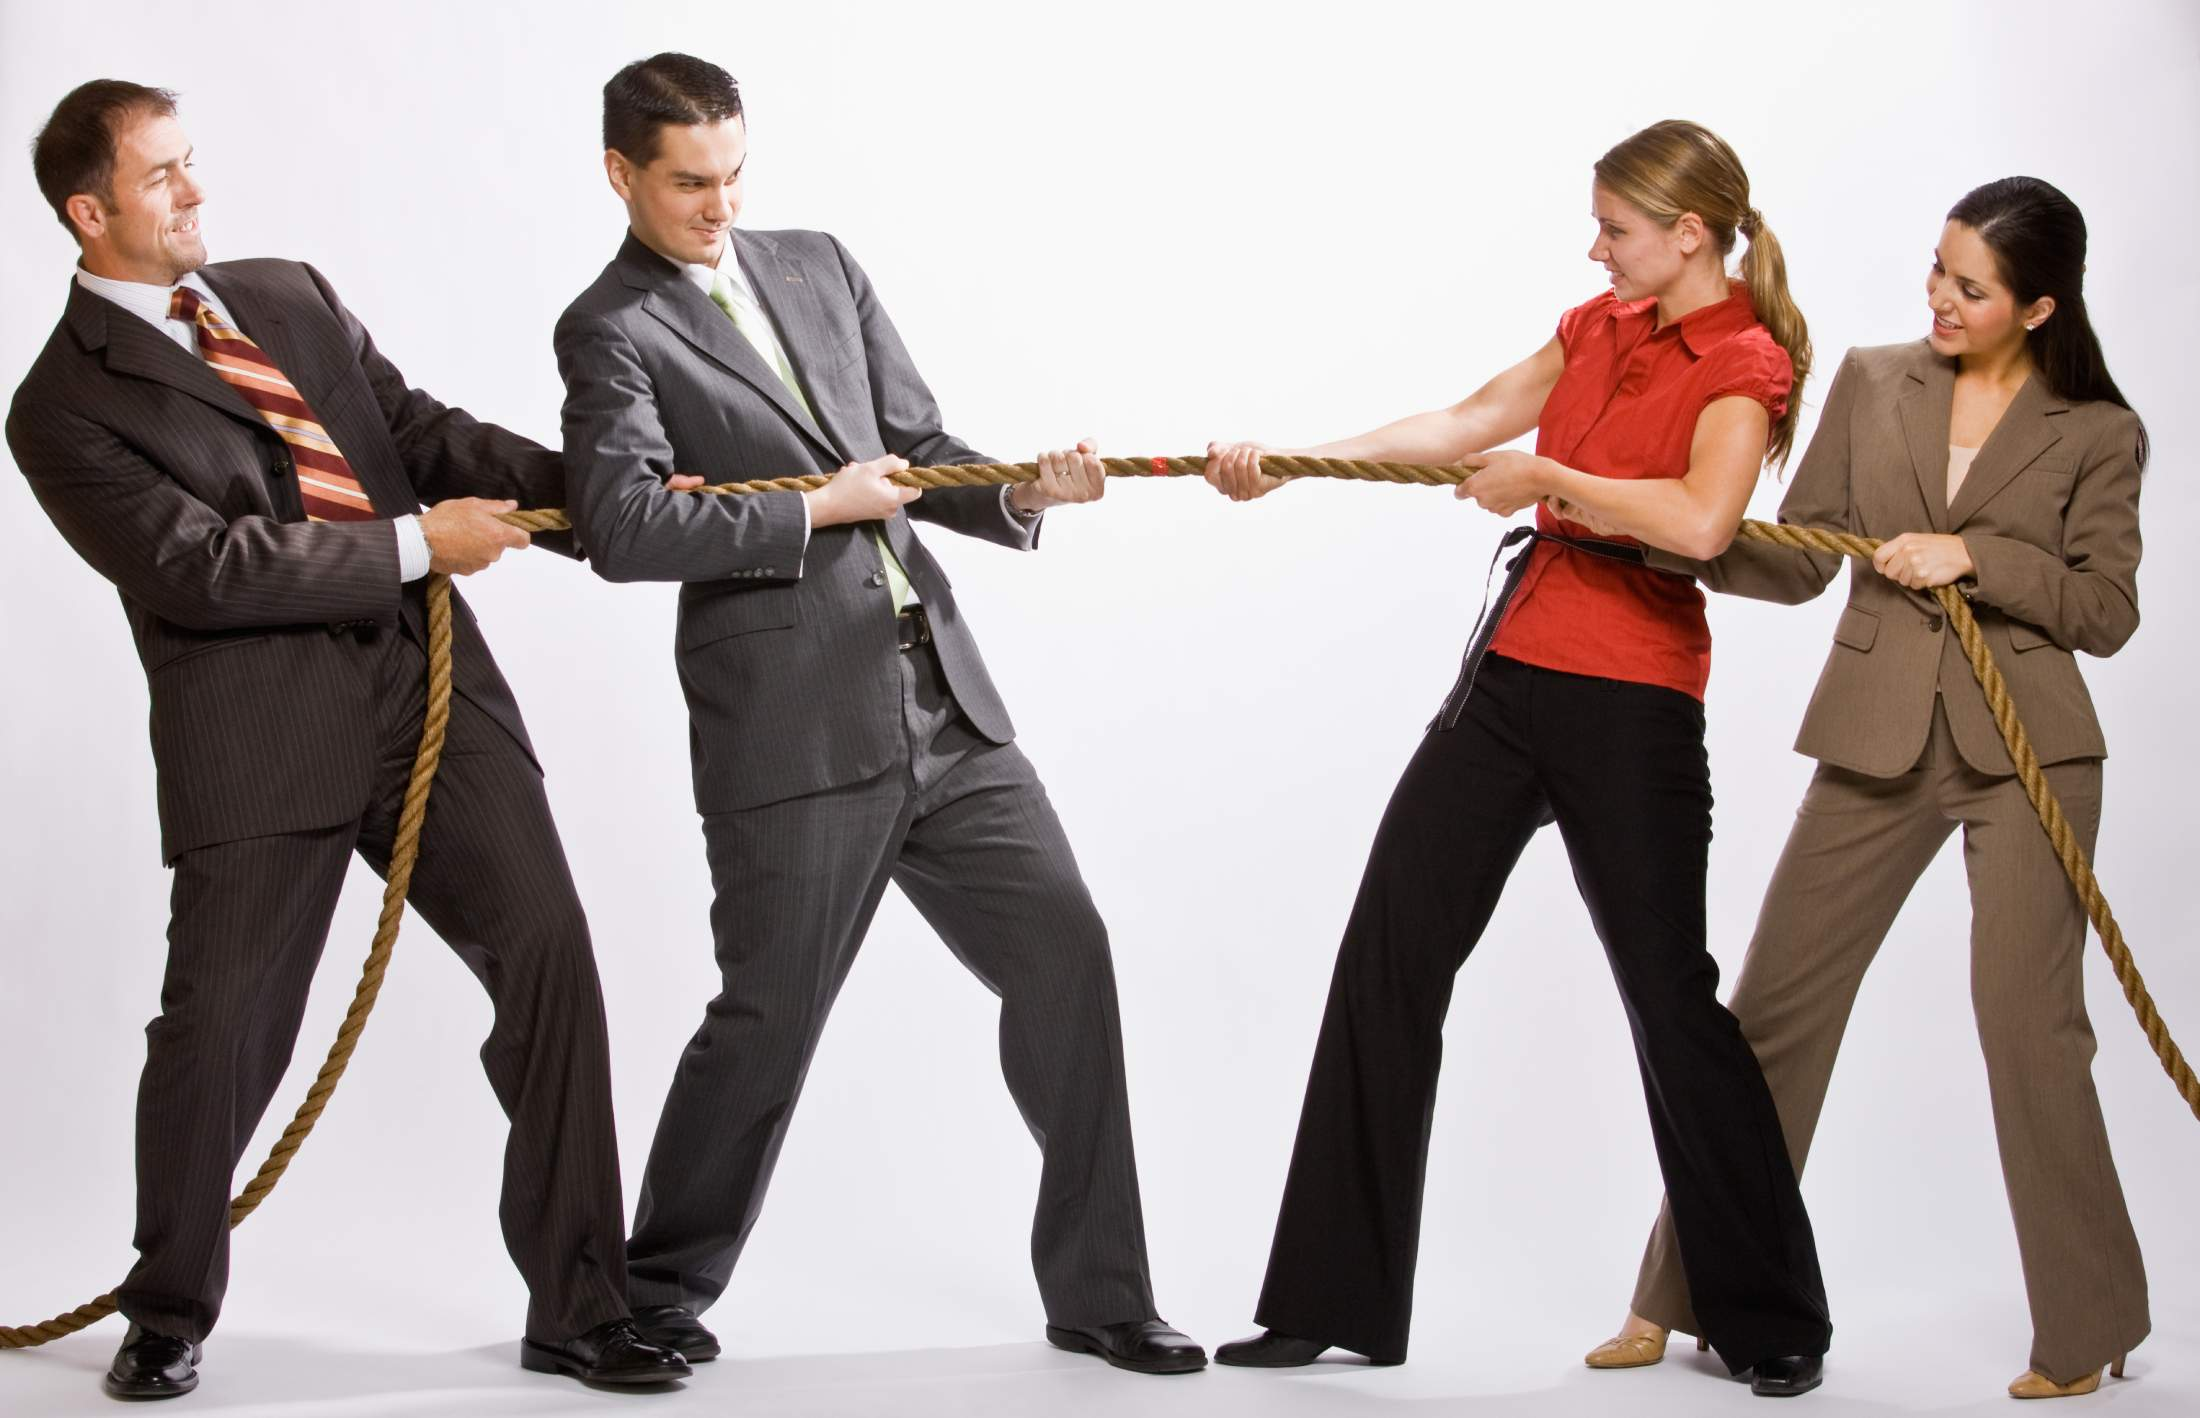 businessmen and businesswomen tug of war